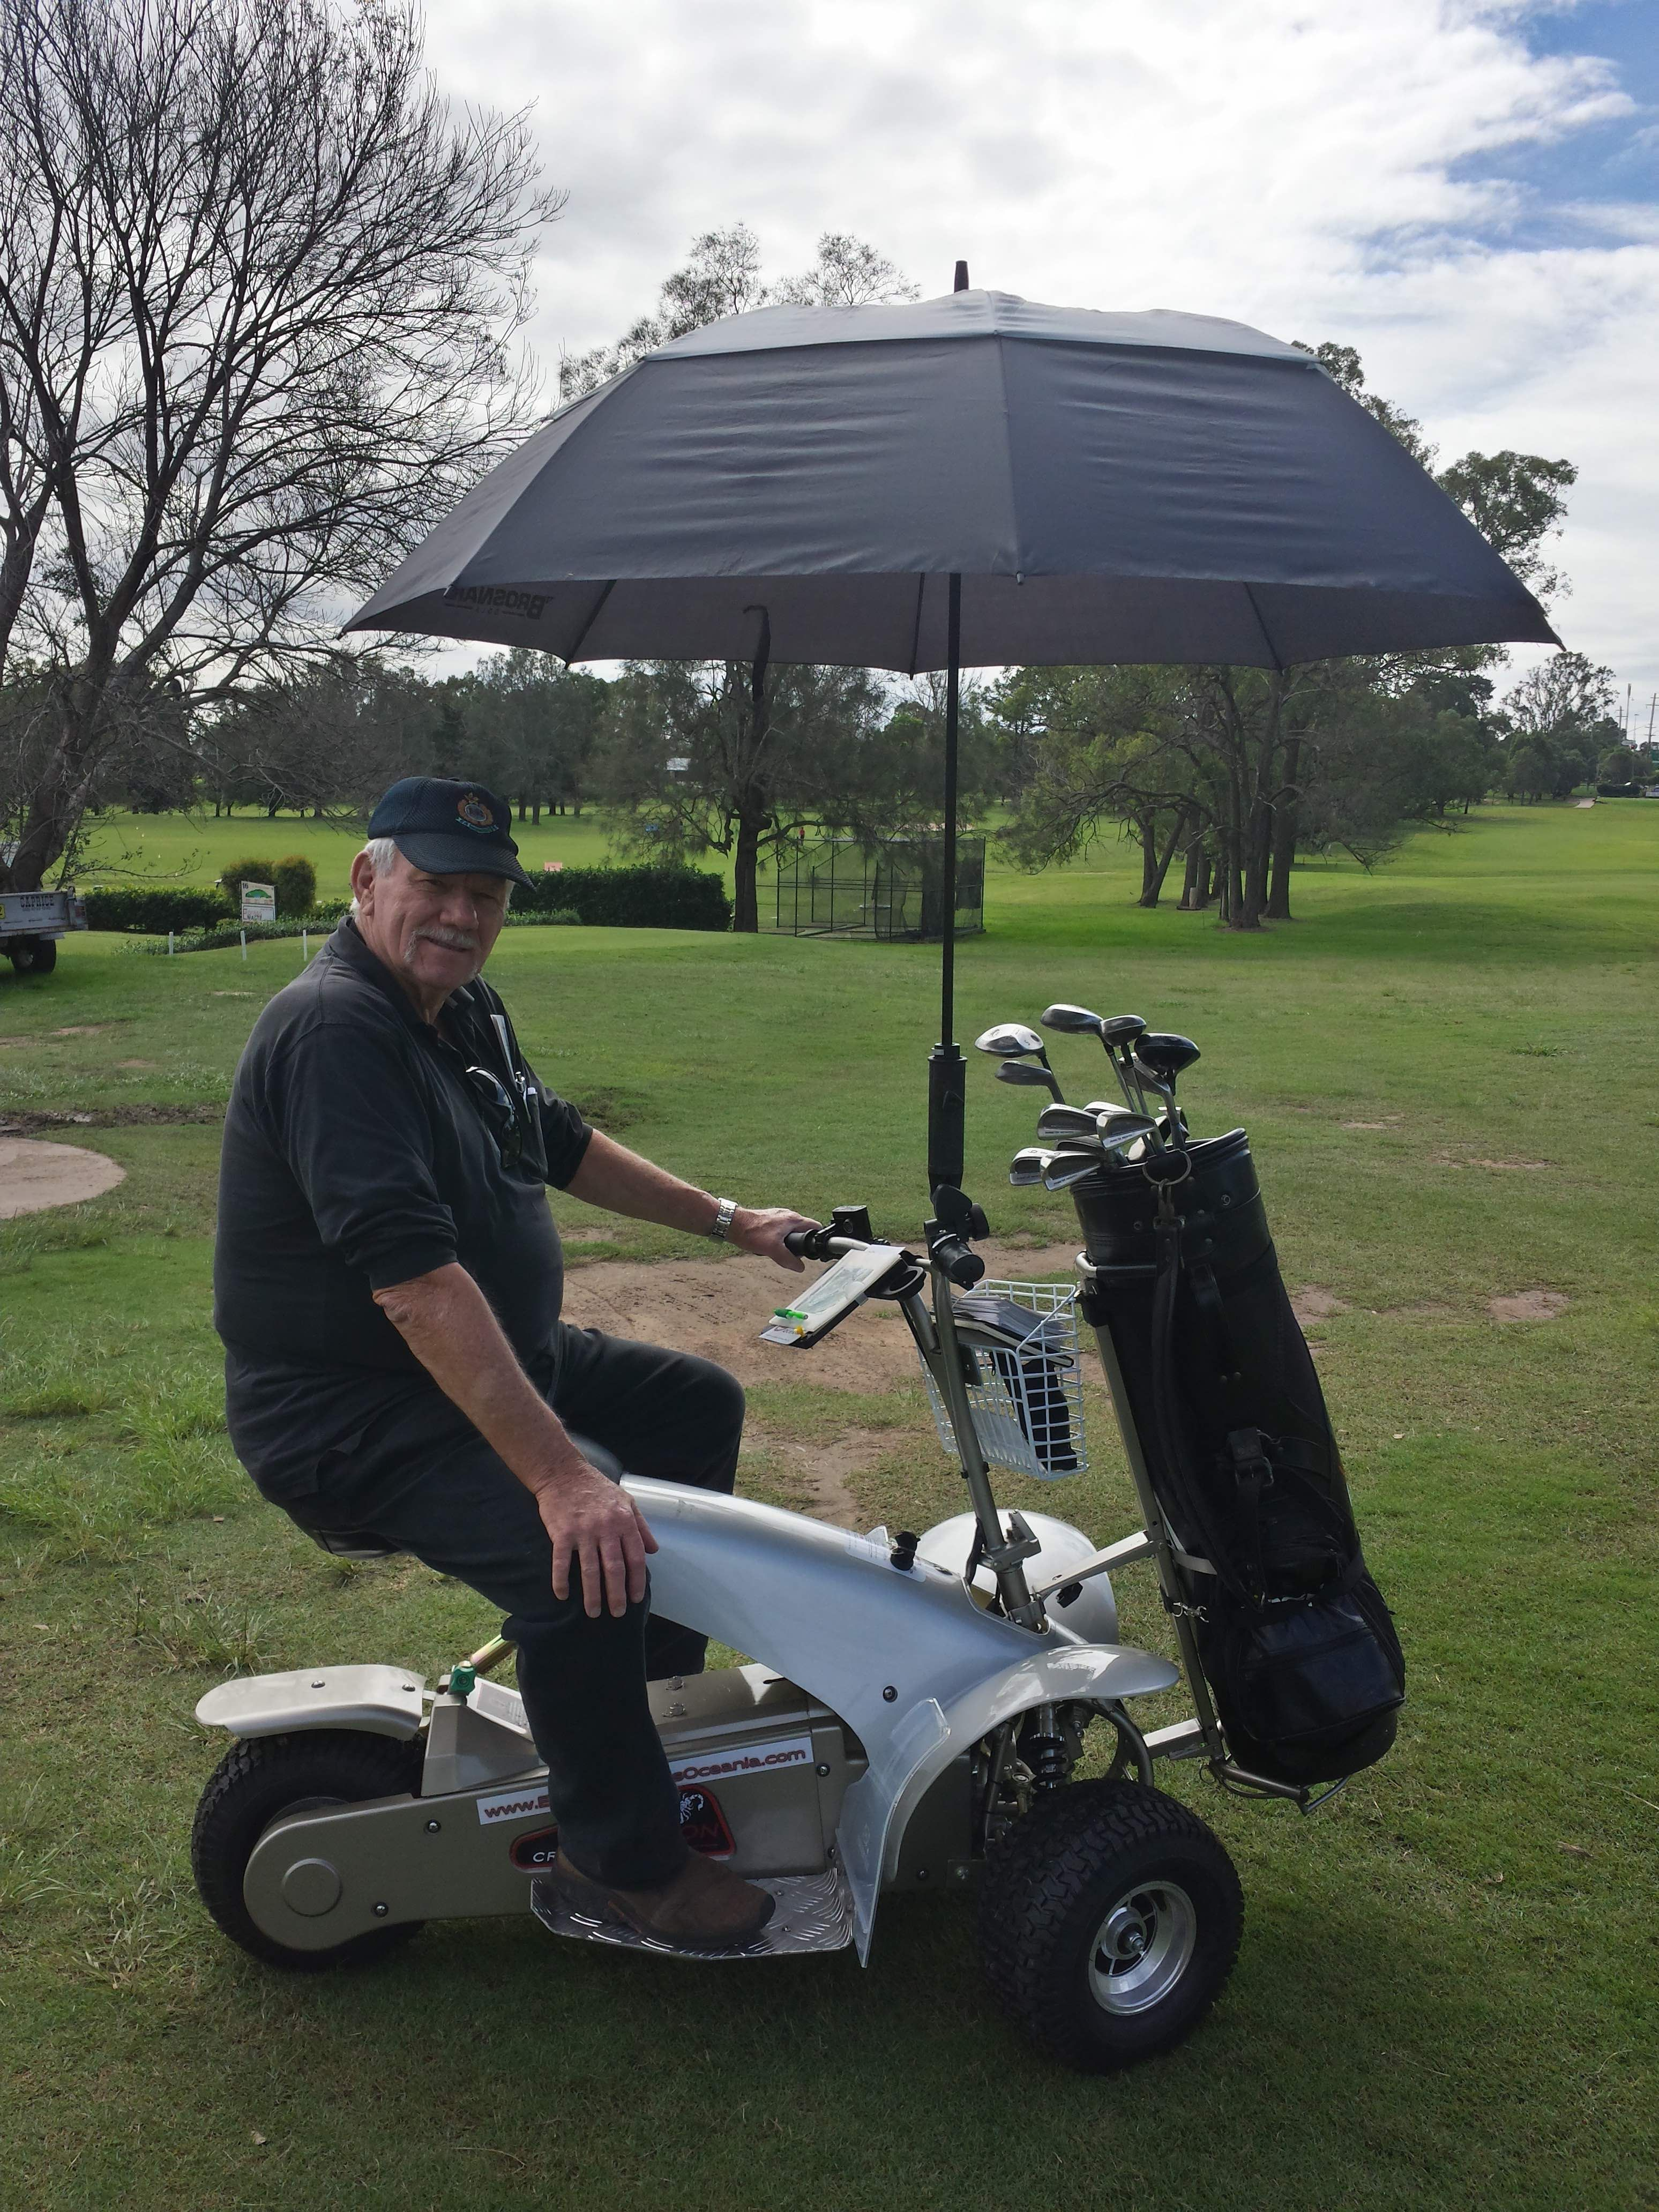 The umbrella holder on the golf cruiser will handle any